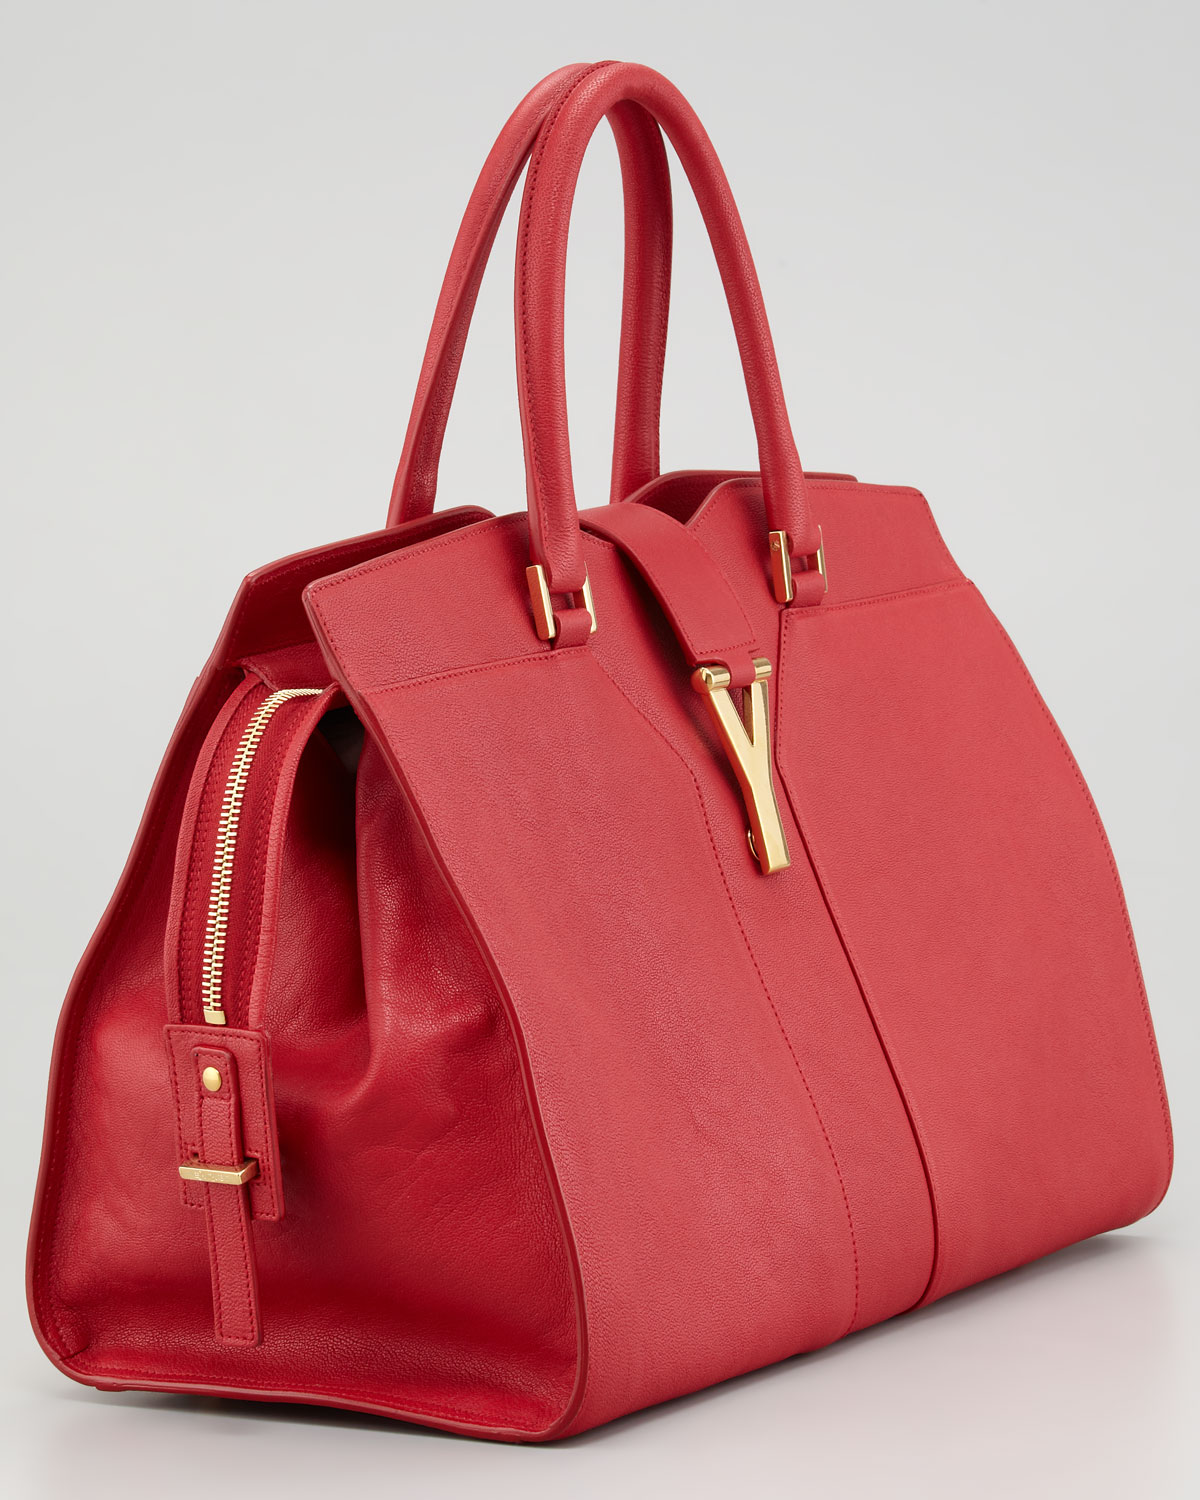 yves saint laurent medium red chyc shoulder bag - yves saint laurent handbags